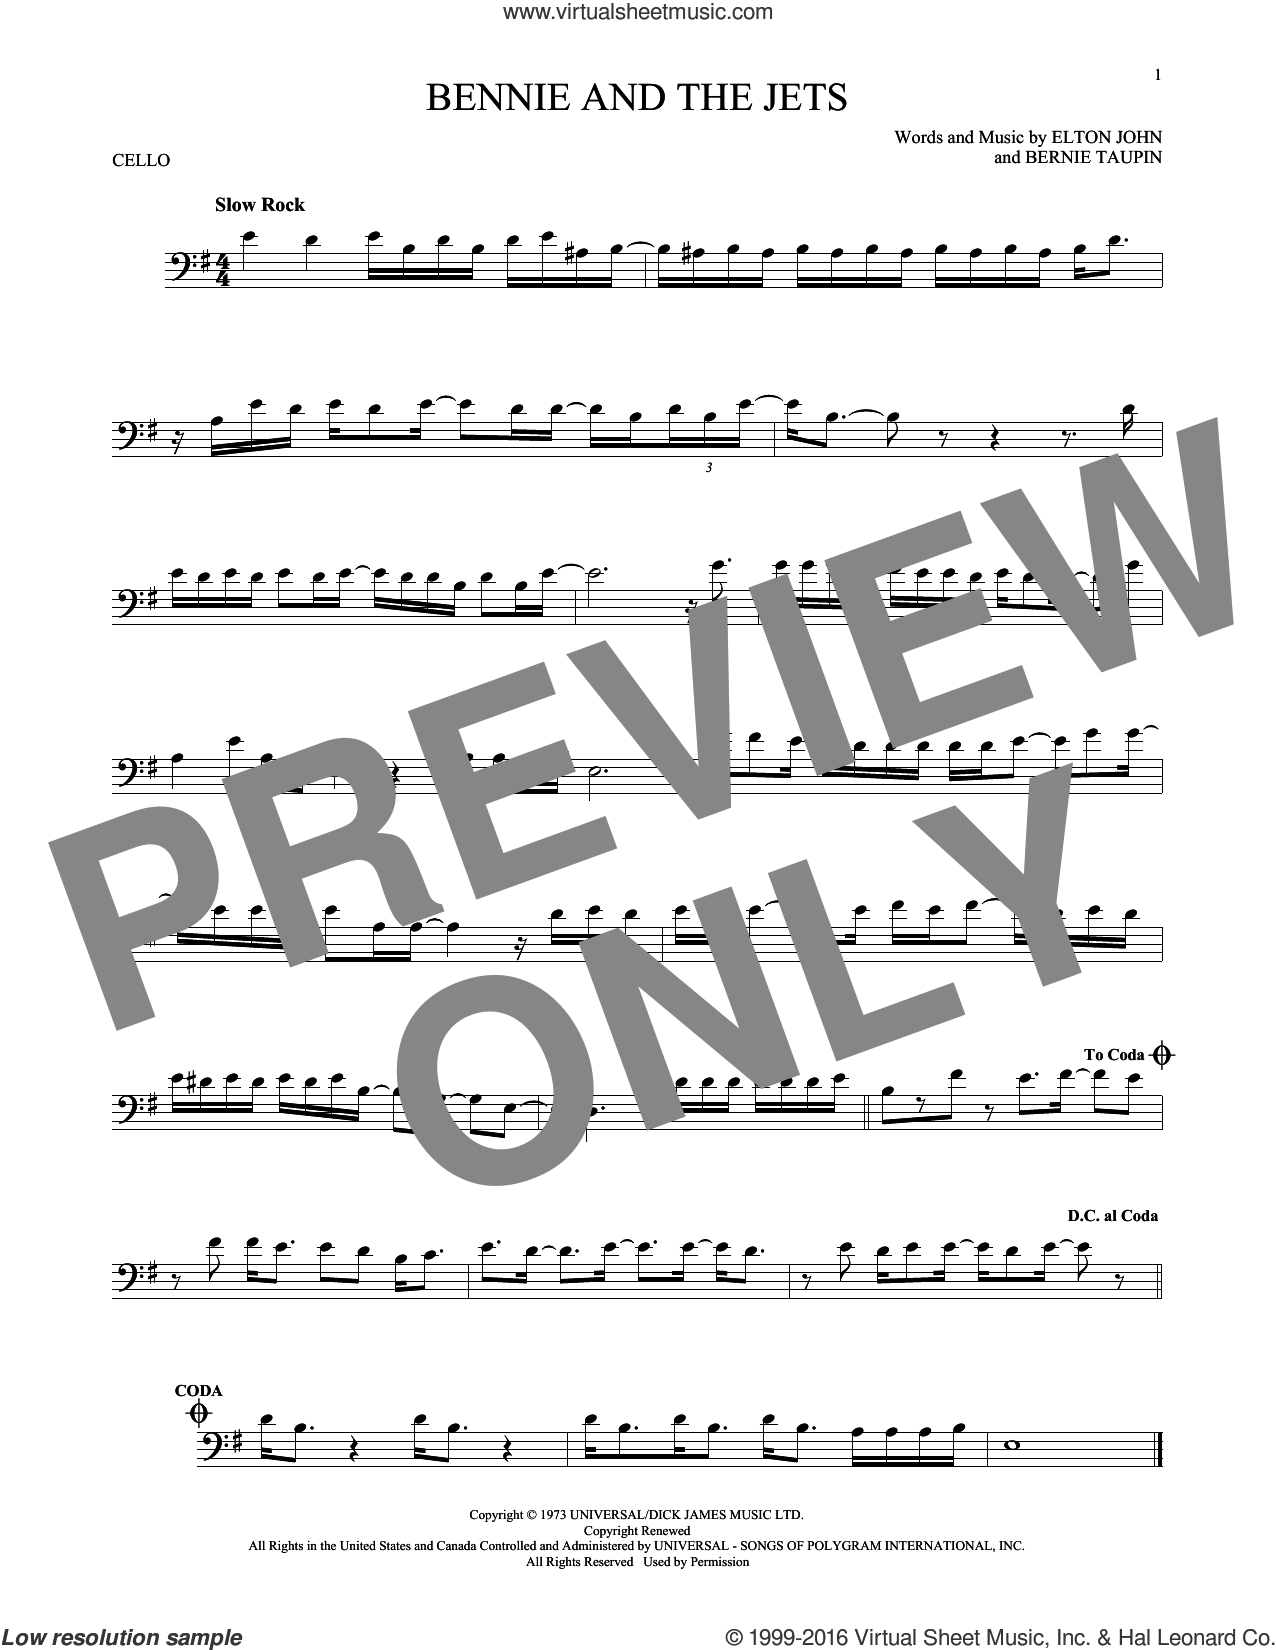 Bennie And The Jets sheet music for cello solo by Bernie Taupin